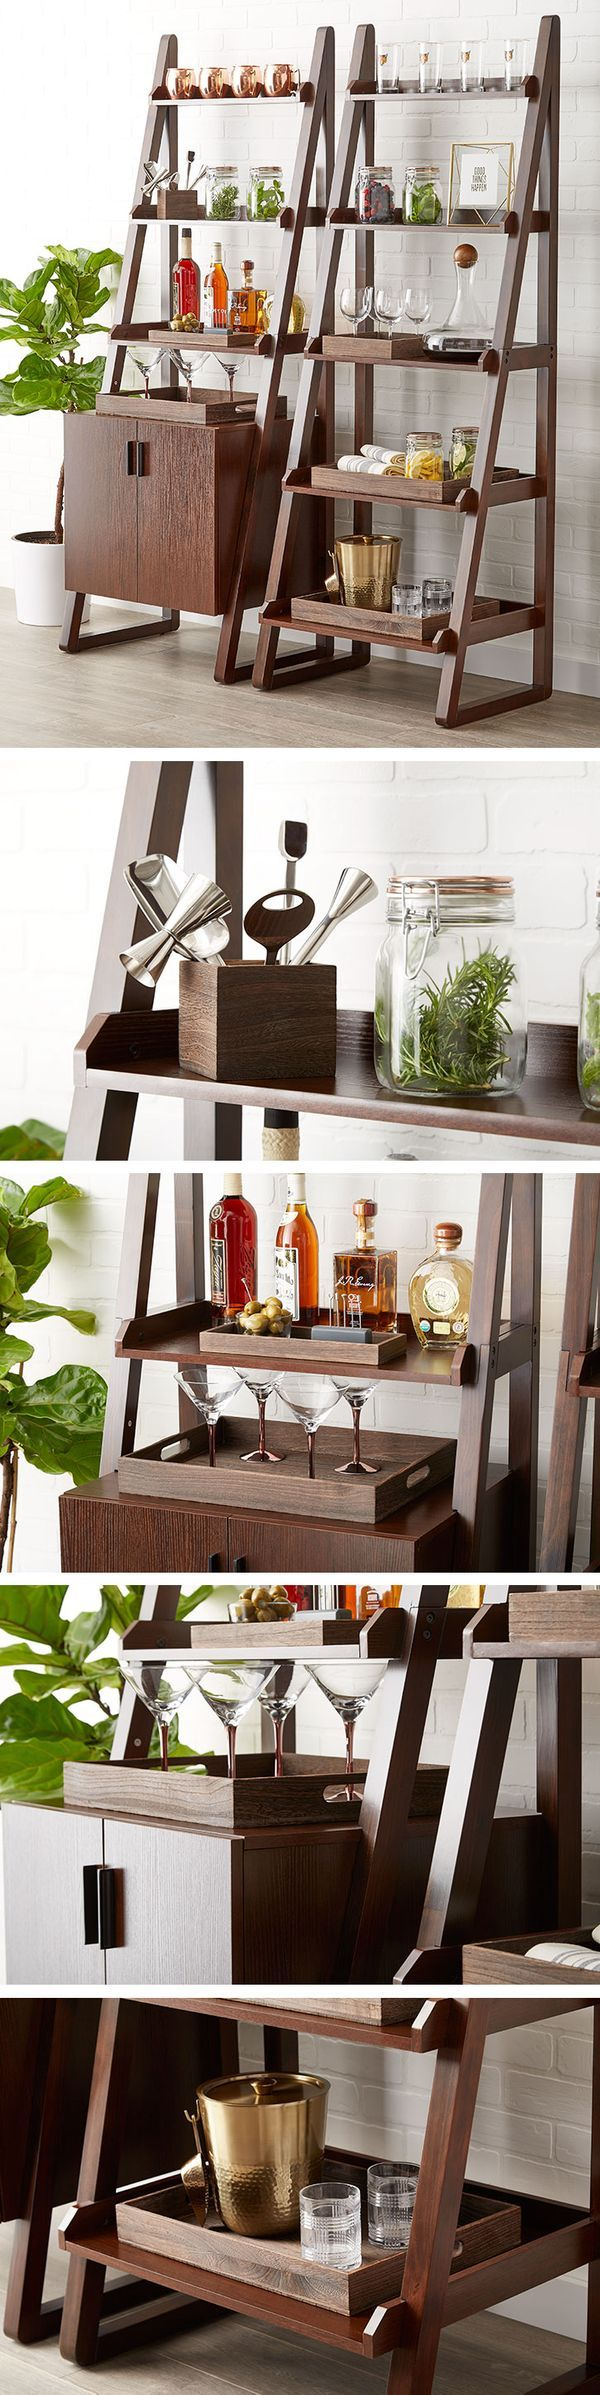 Home Organization Furniture 374 best home organization images on pinterest | container store